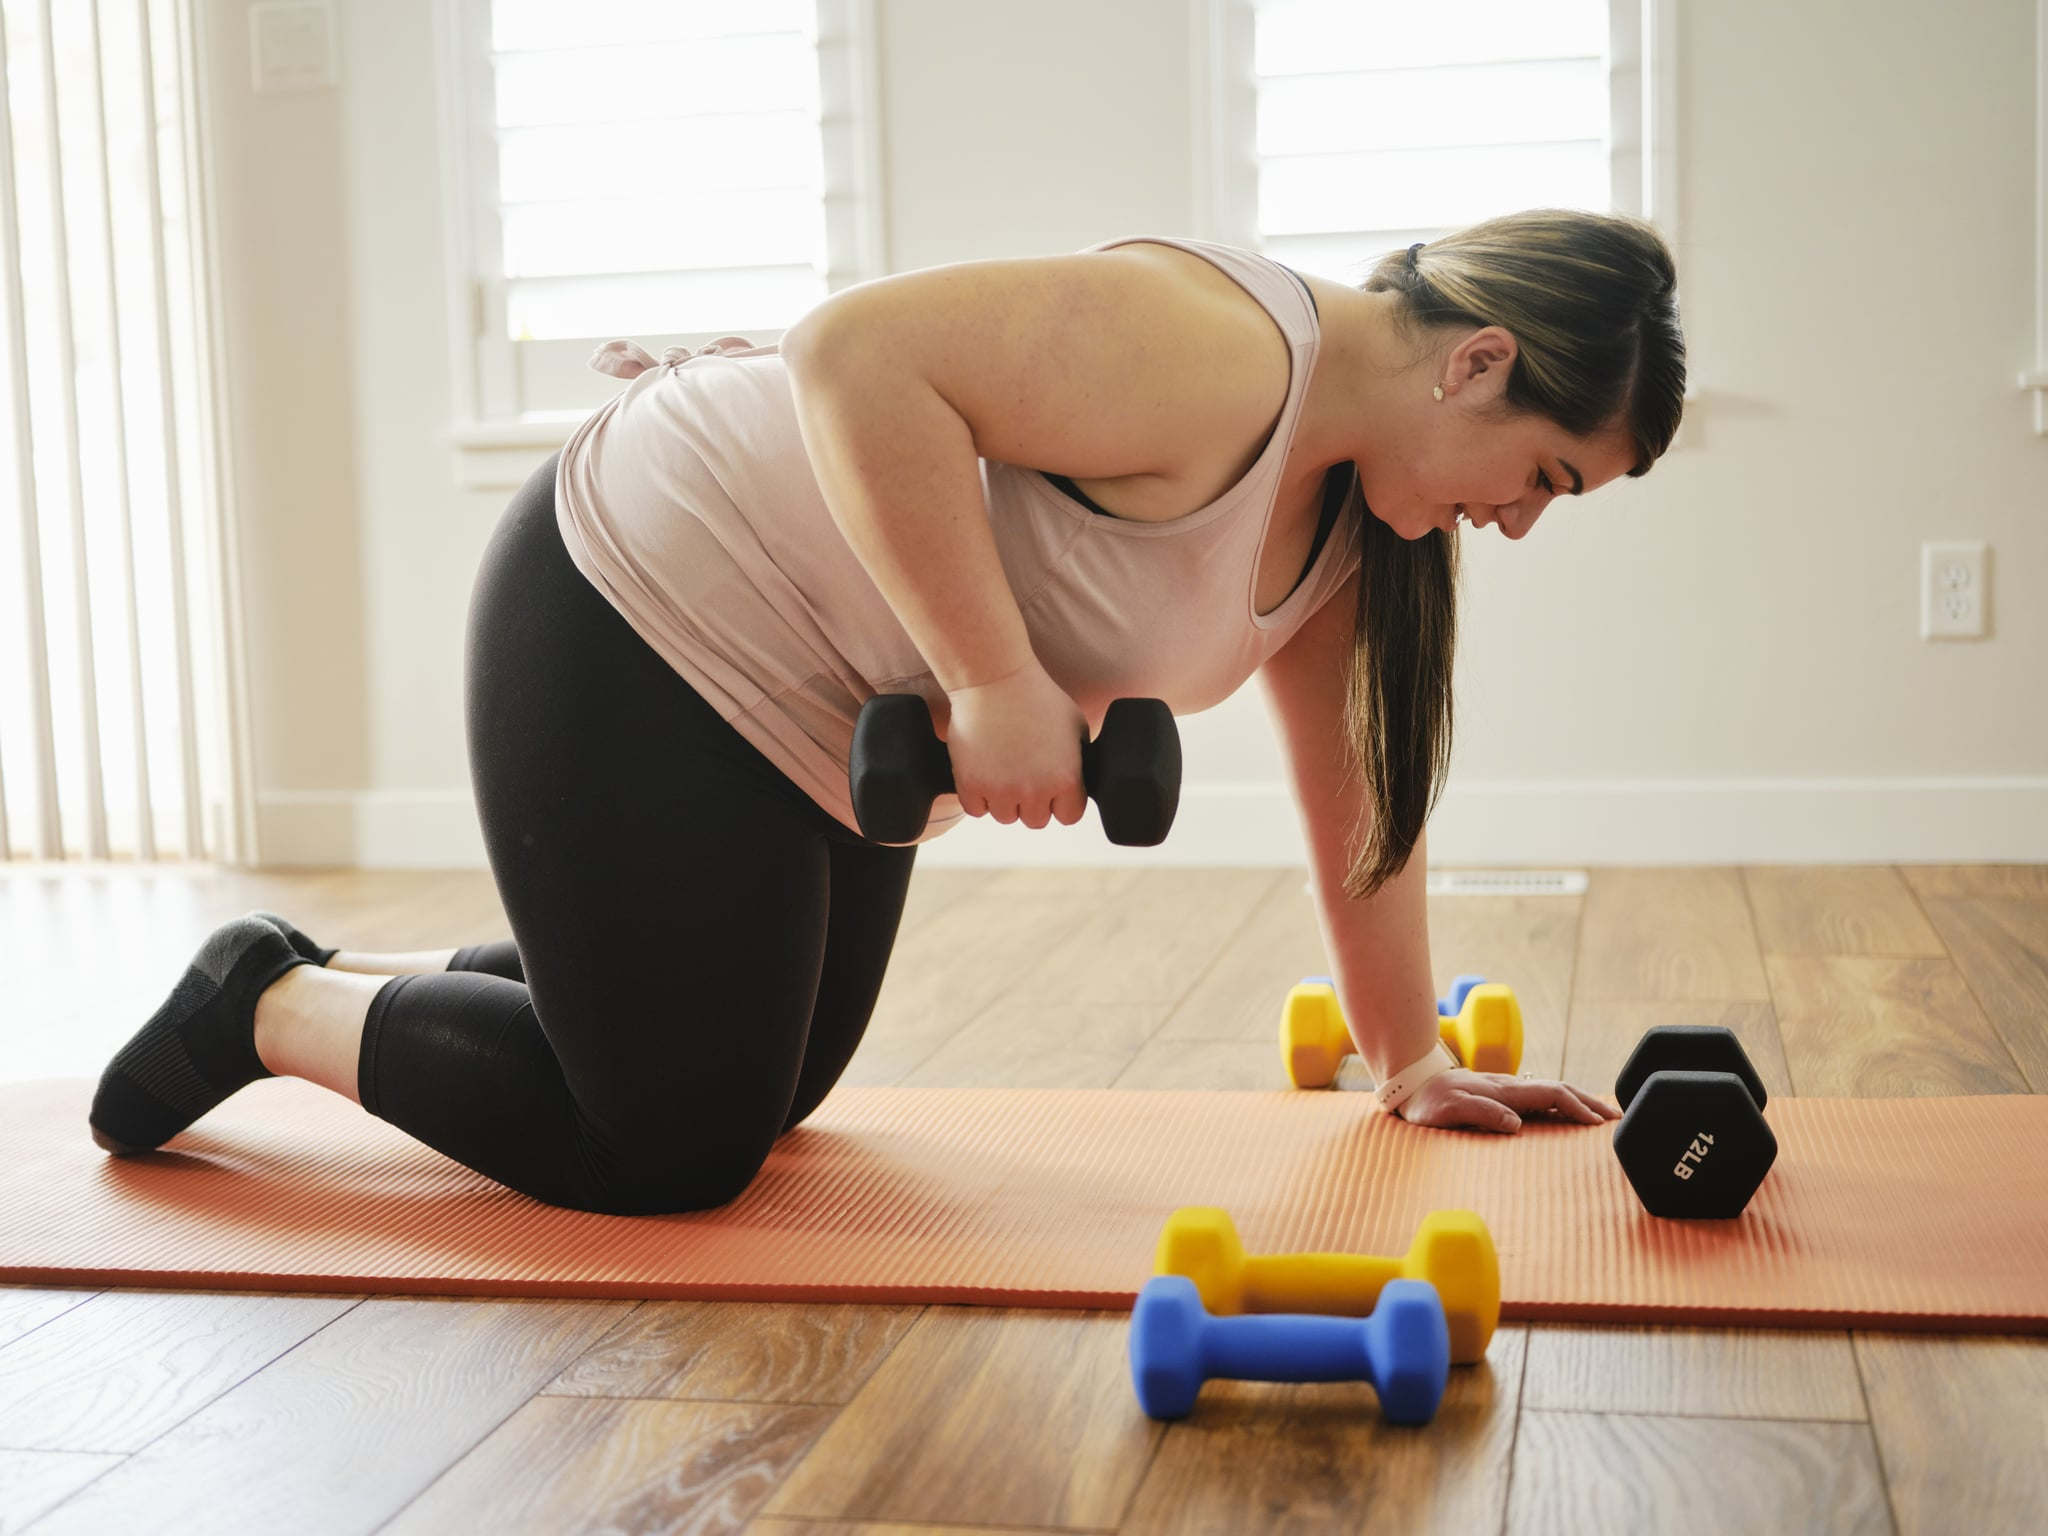 A woman exercising in her home with hand weights.